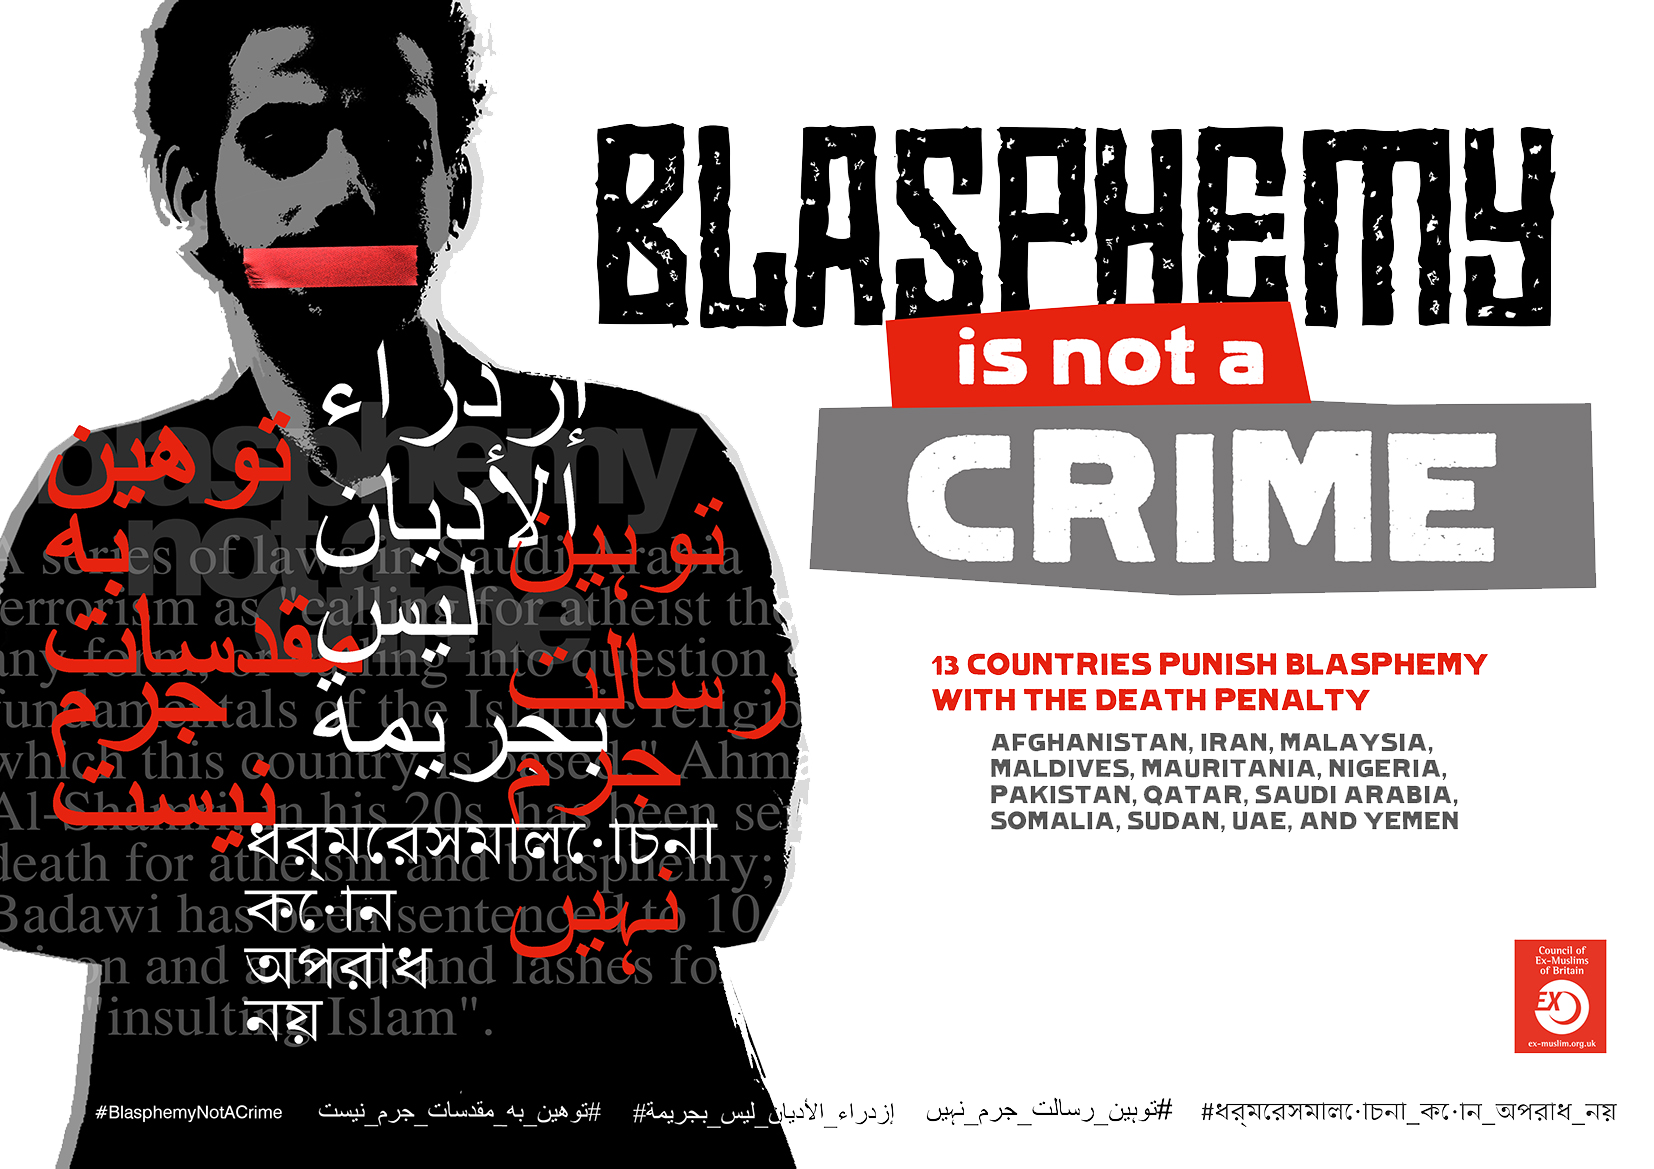 Blasphemy is NOT a Crime campaign